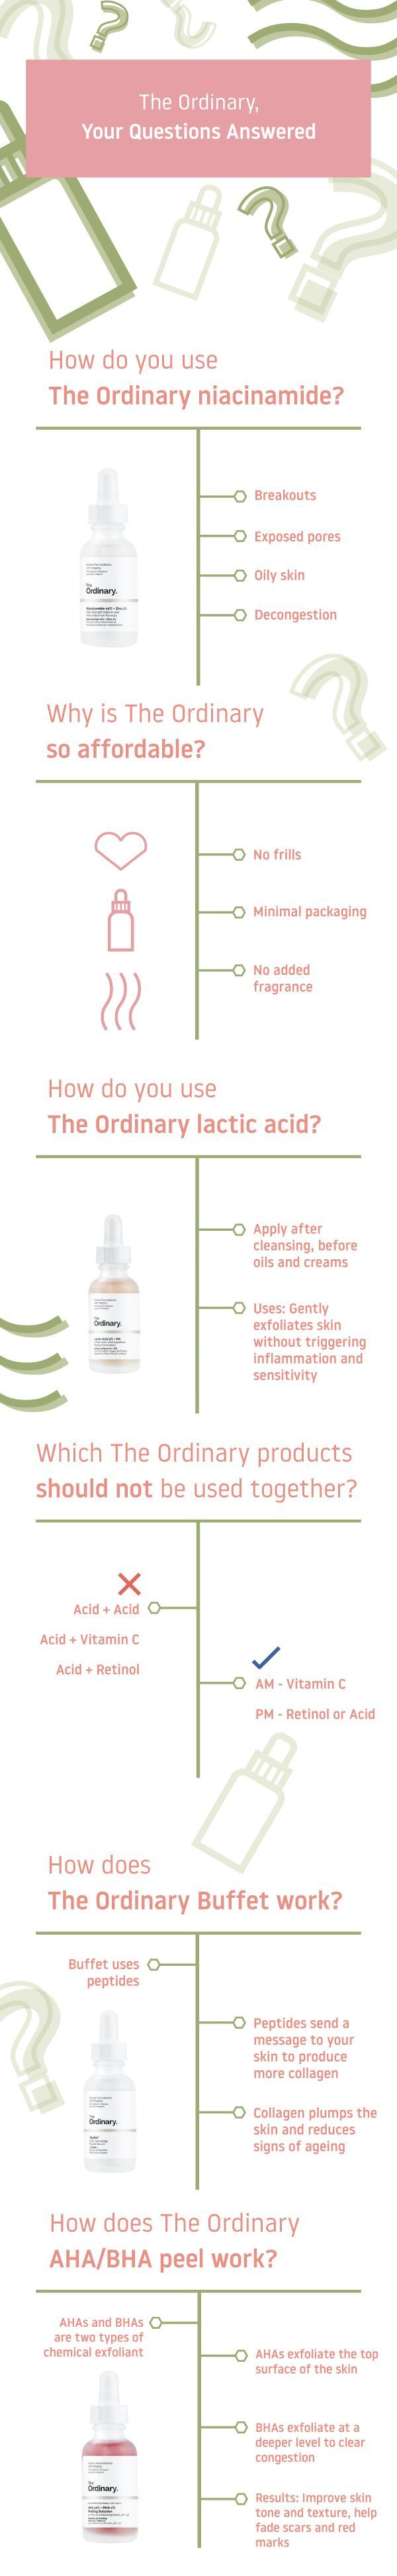 The Ordinary, Your Questions Answered Beauty makeup tips